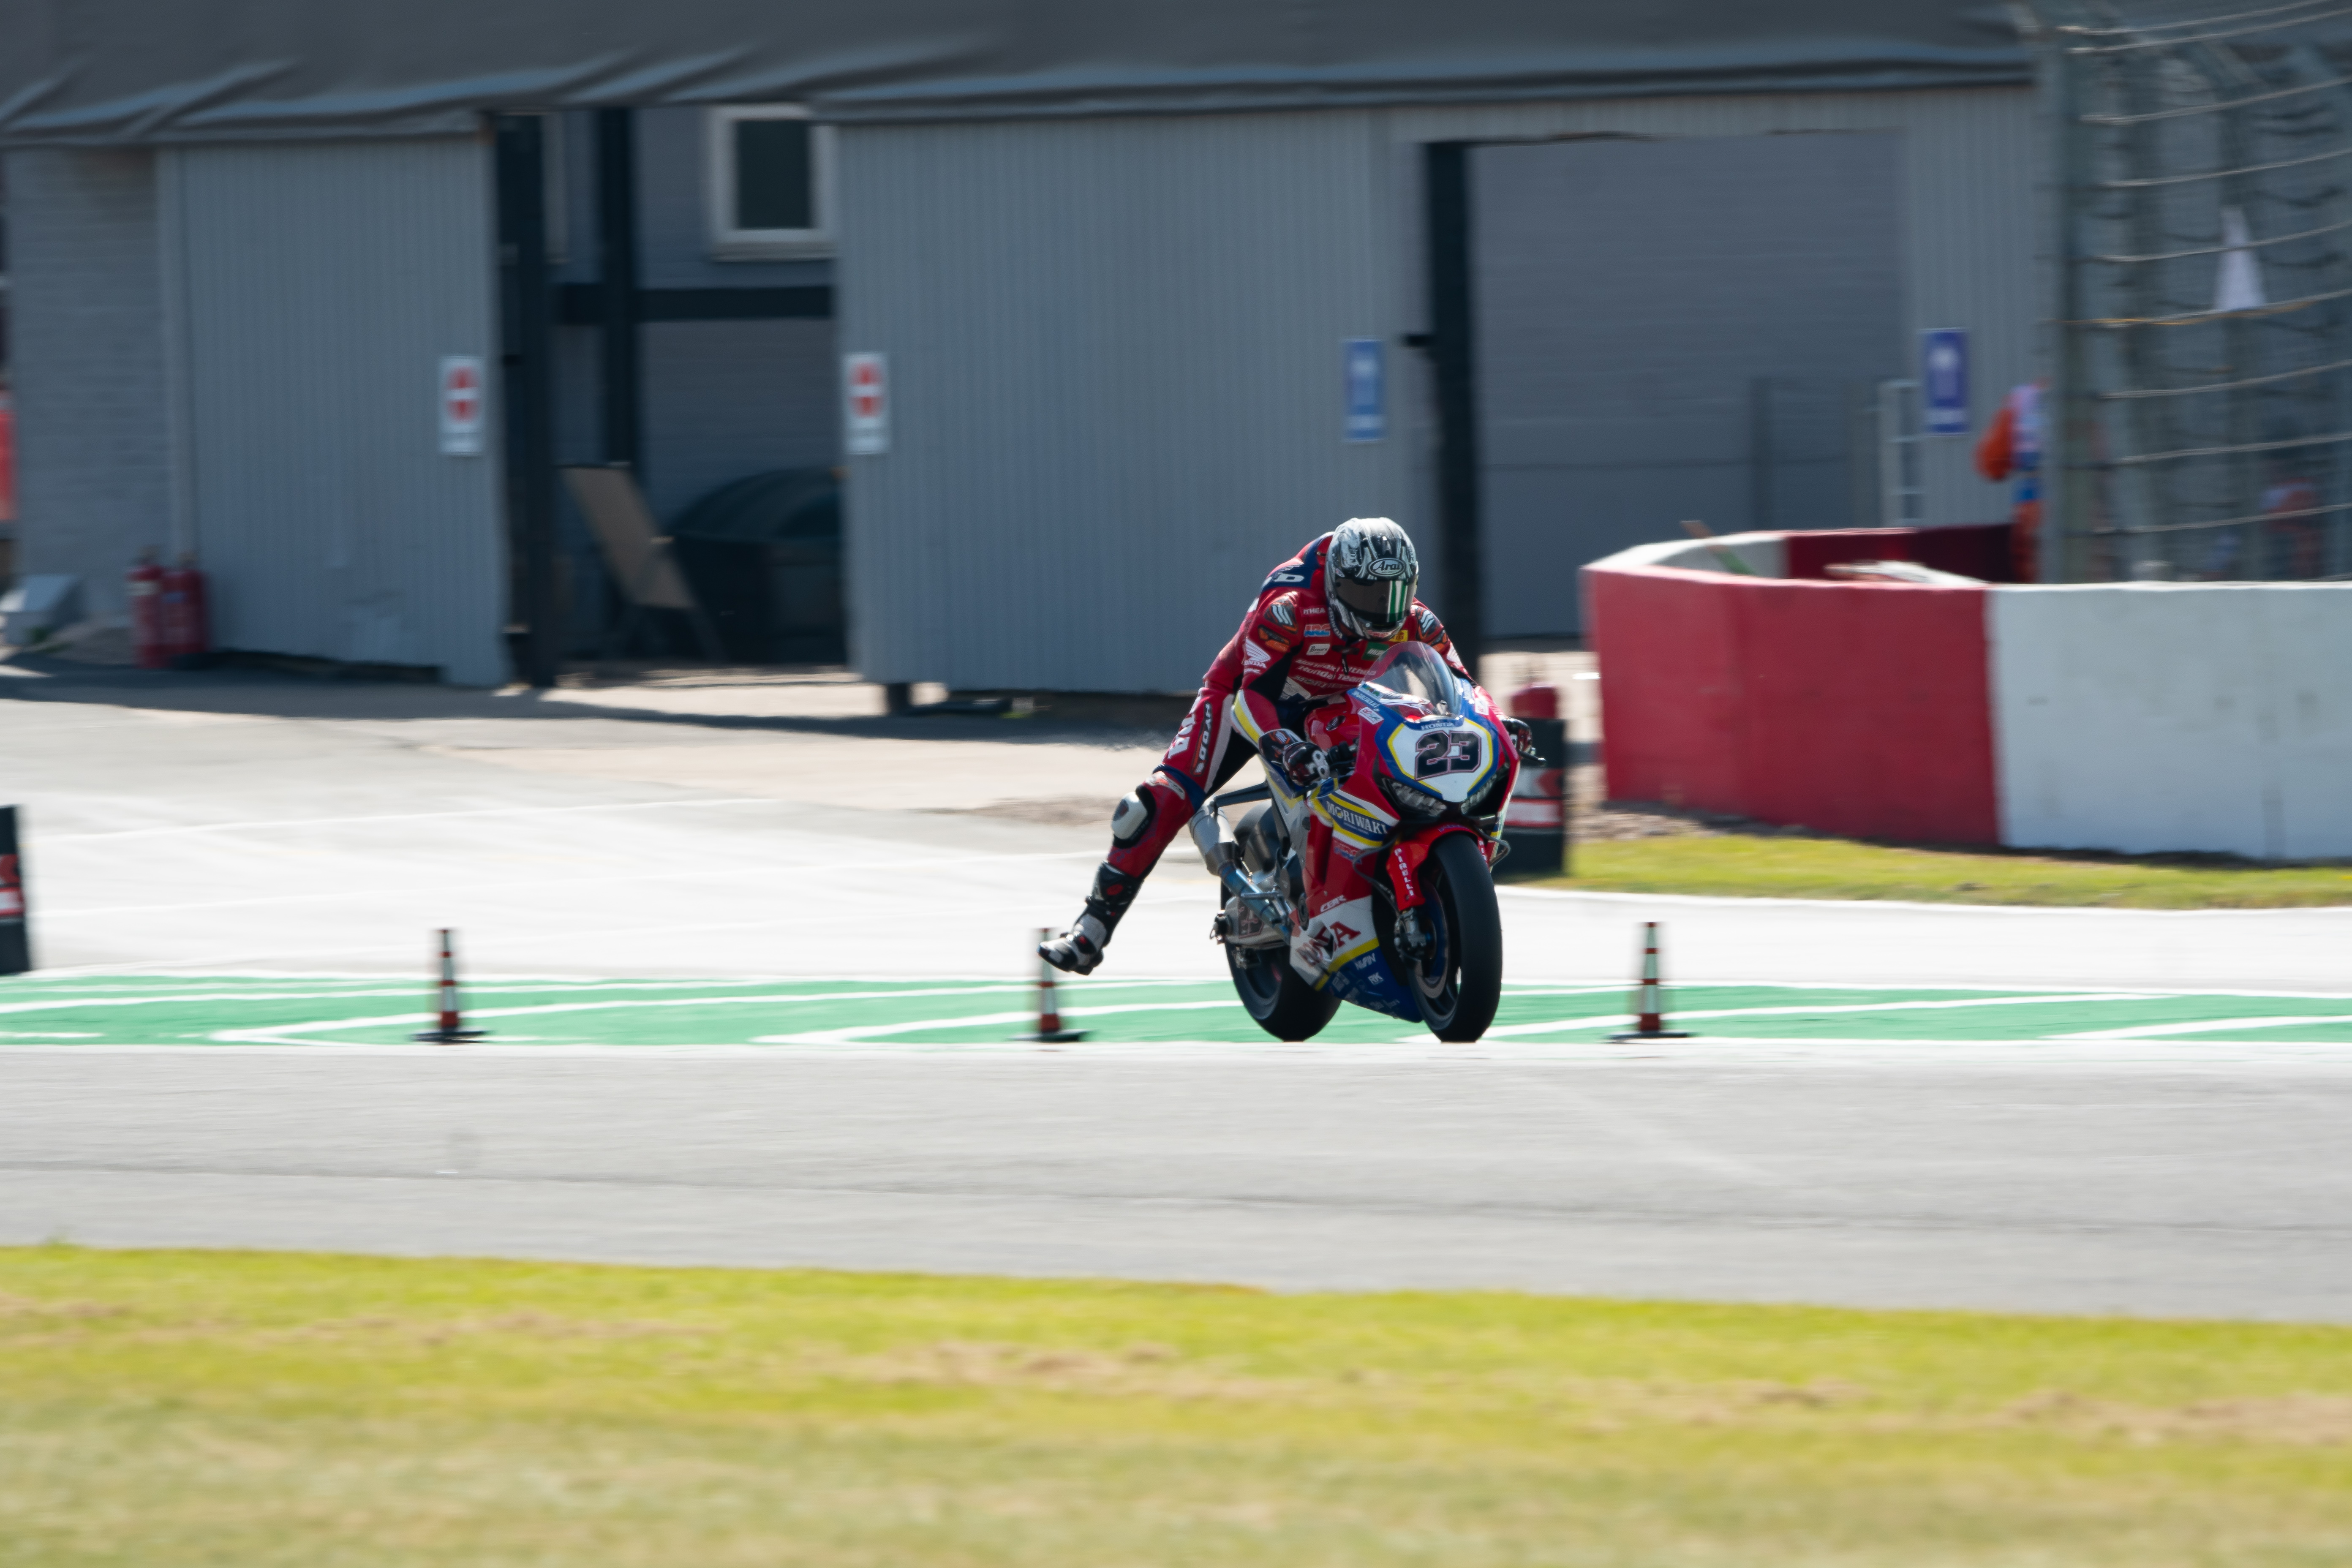 Moriwaki_Althea_Honda_Team_Donington_77